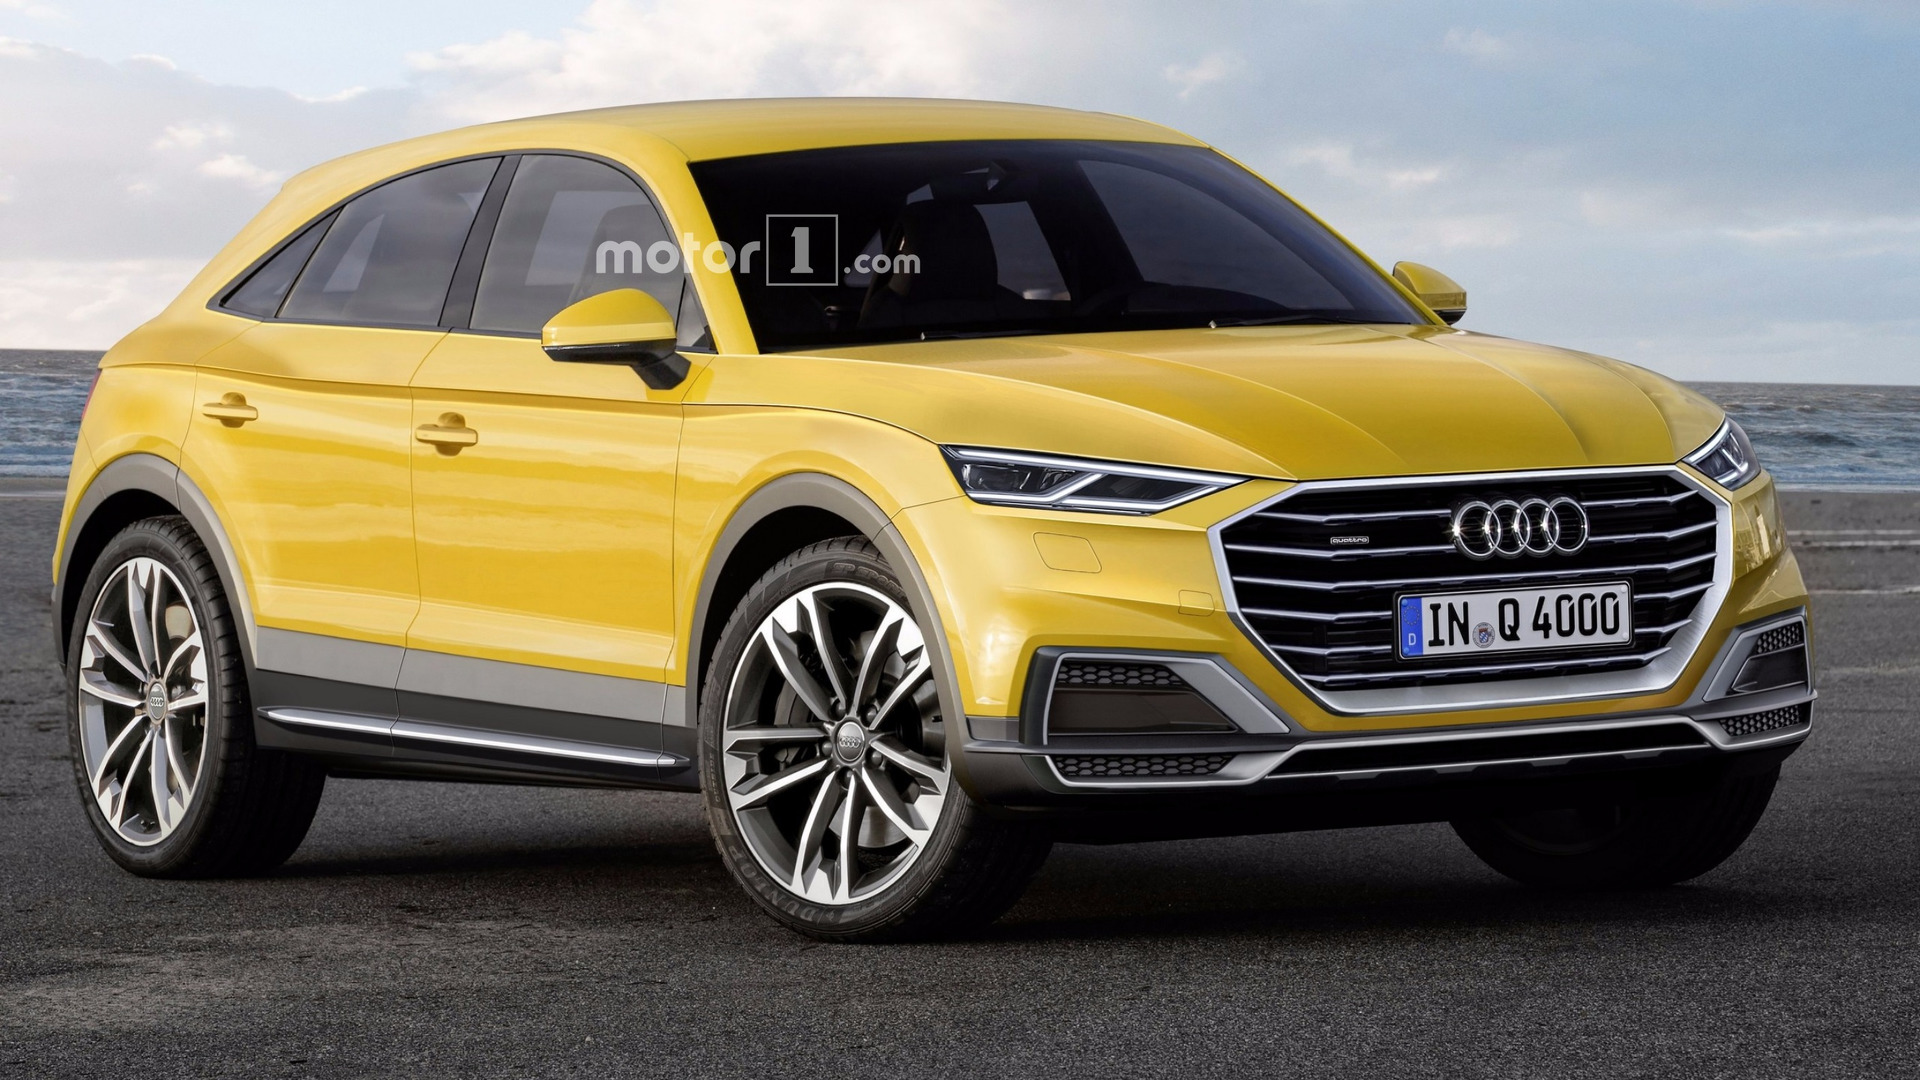 Highlander For Sale >> Will The 2019 Audi Q4 Look Like This?